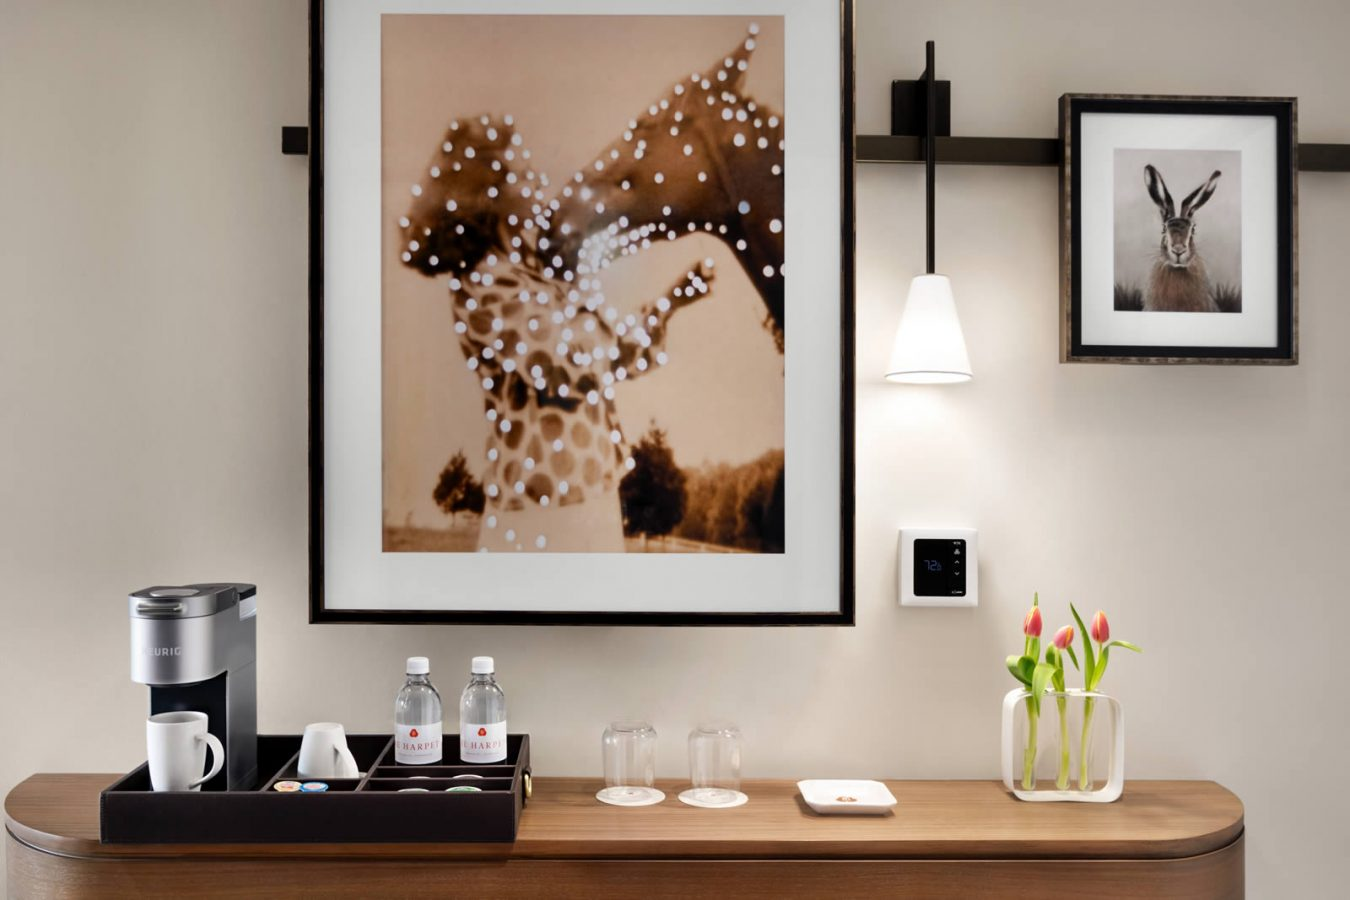 Counter of room with coffee and flowers